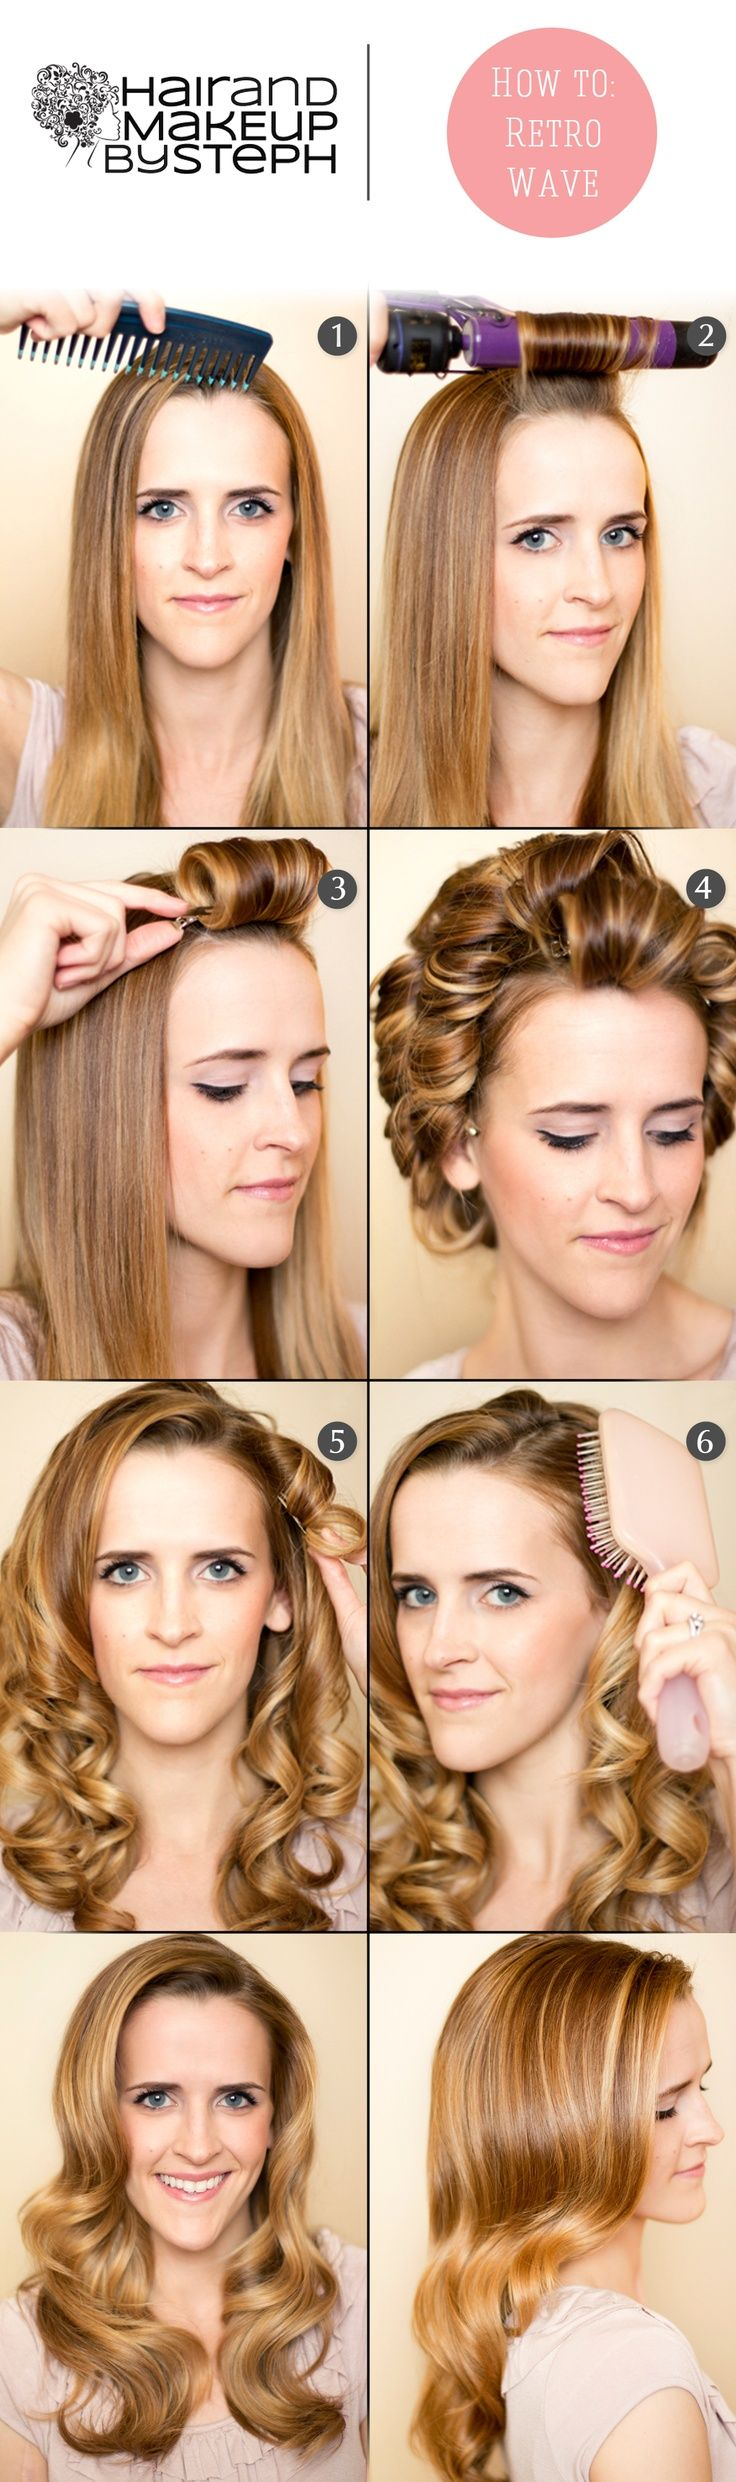 To acquire Hairstyle retro tutorials: 6 diy vintage hairstyles picture trends